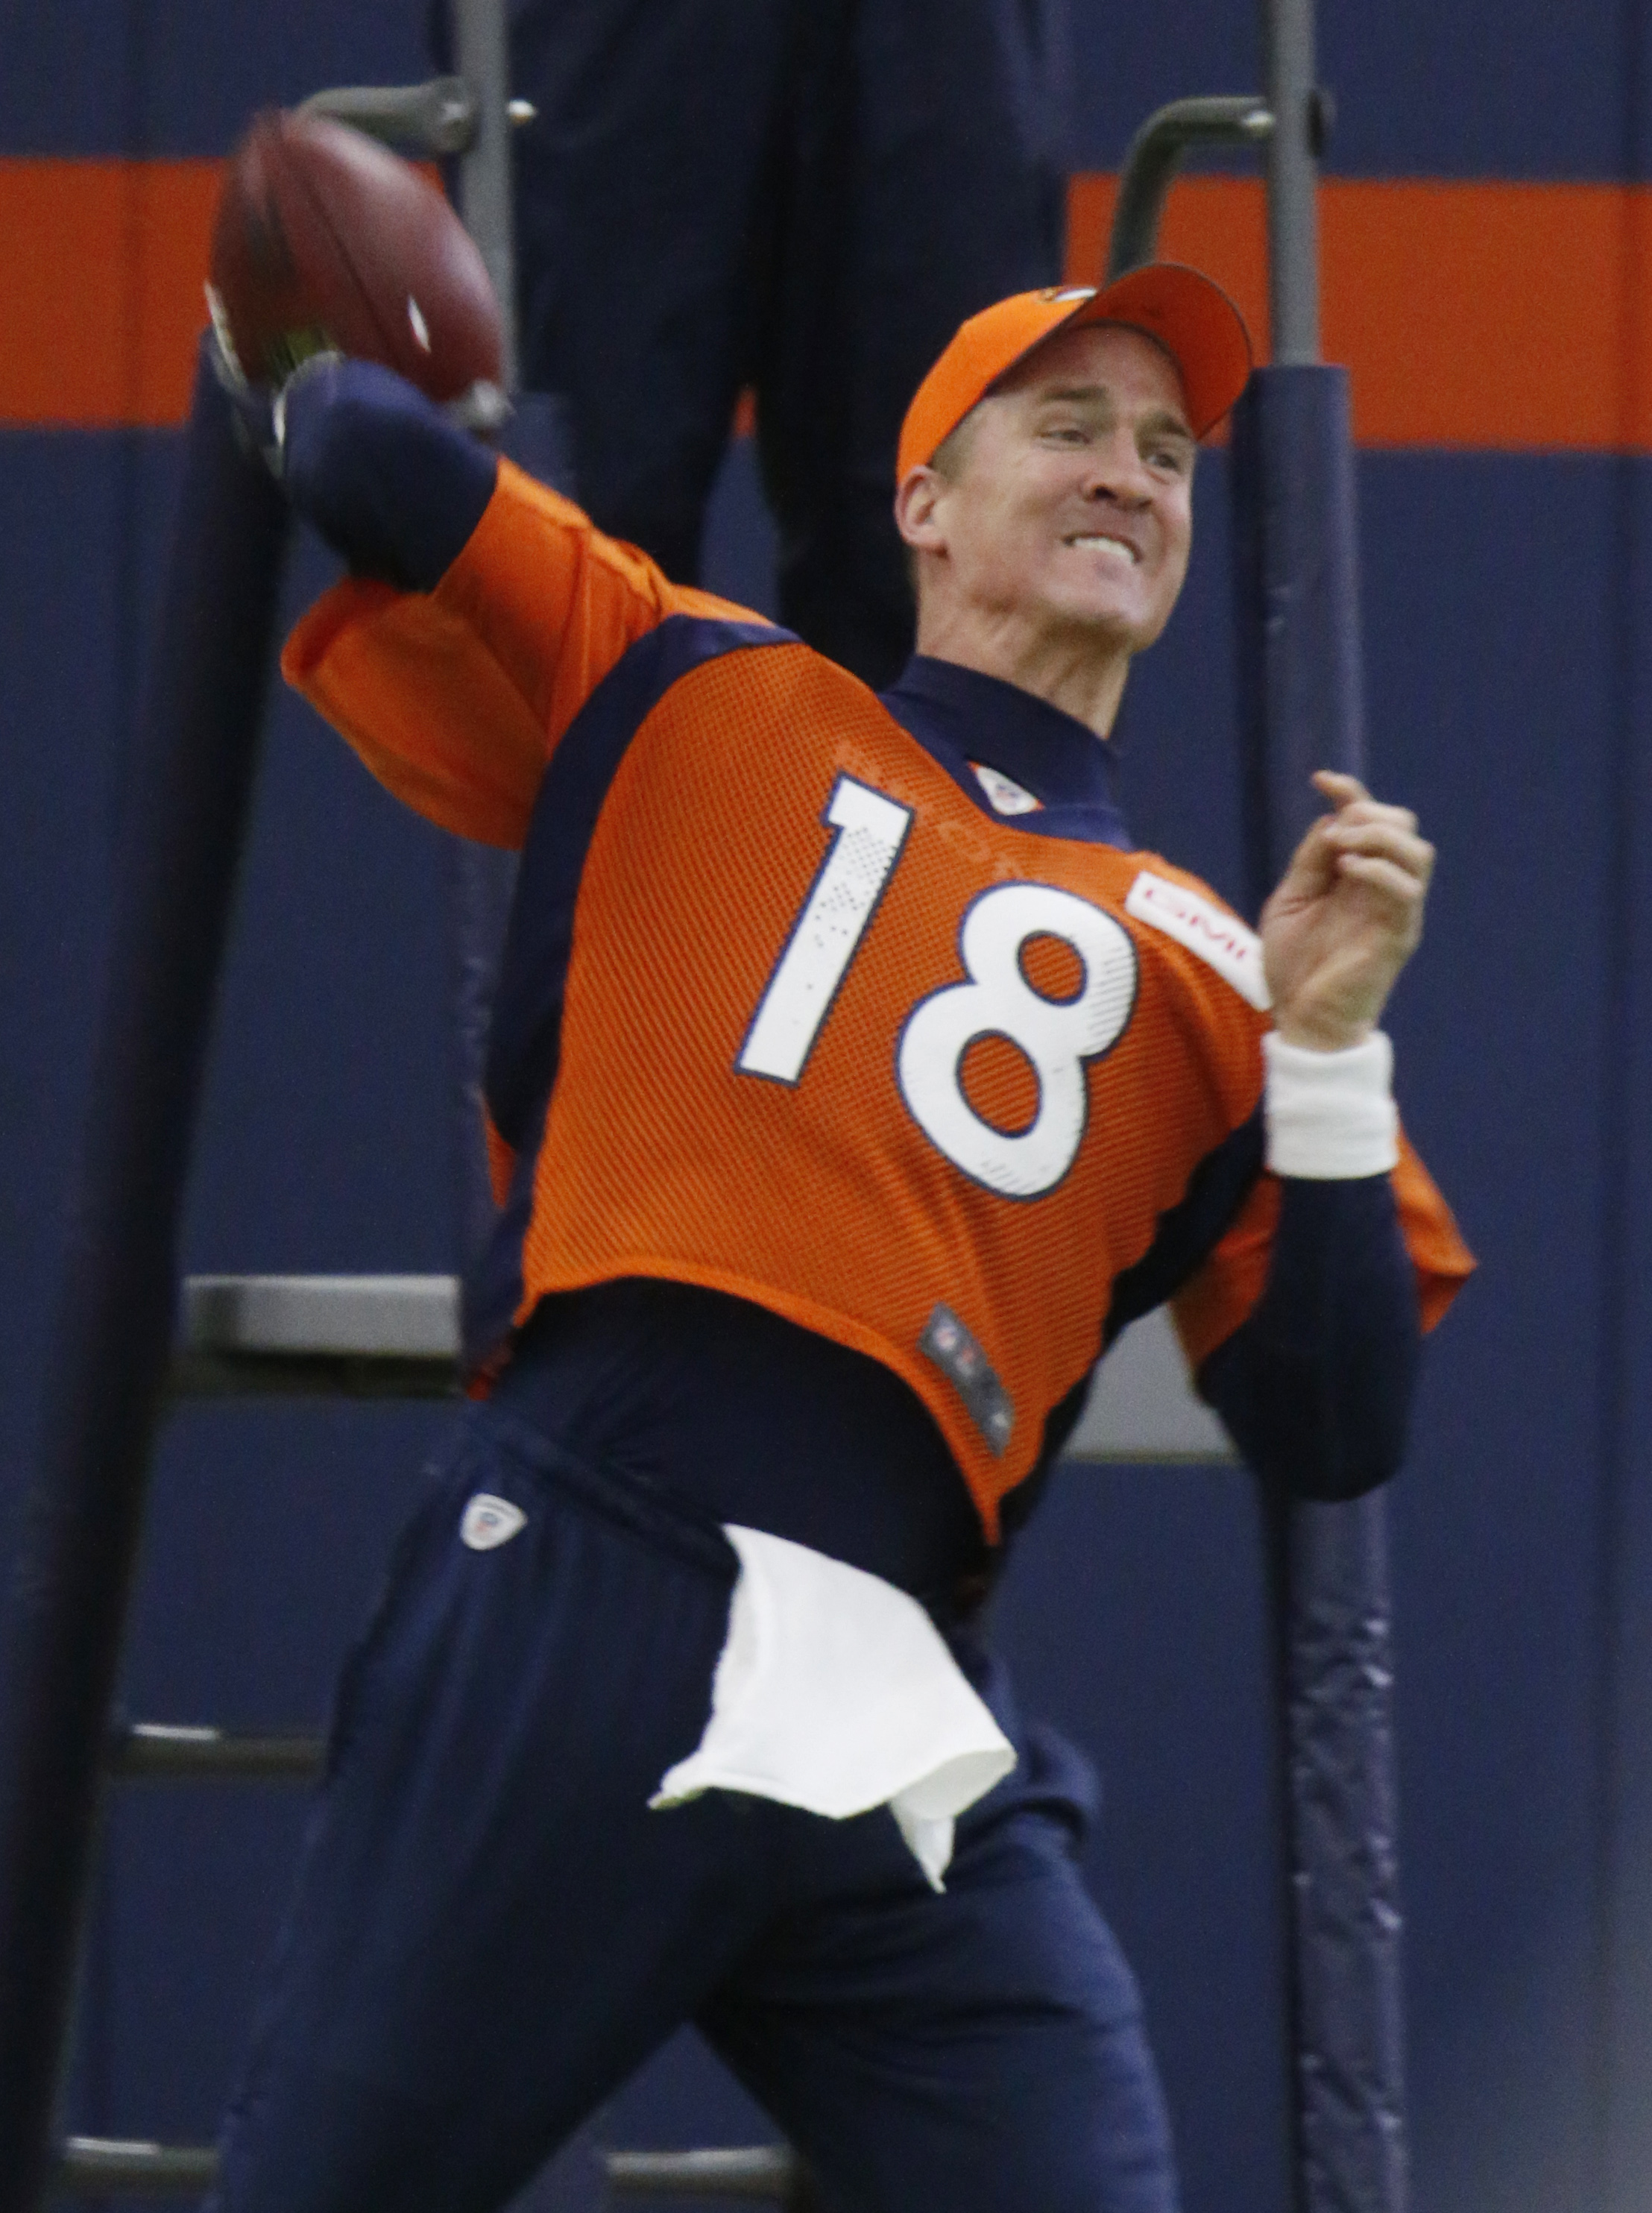 Denver Broncos quarterback Peyton Manning throws during the team's NFL football practice Thursday, Jan. 7, 2016, in Englewood, Colo. (AP Photo/David Zalubowski)